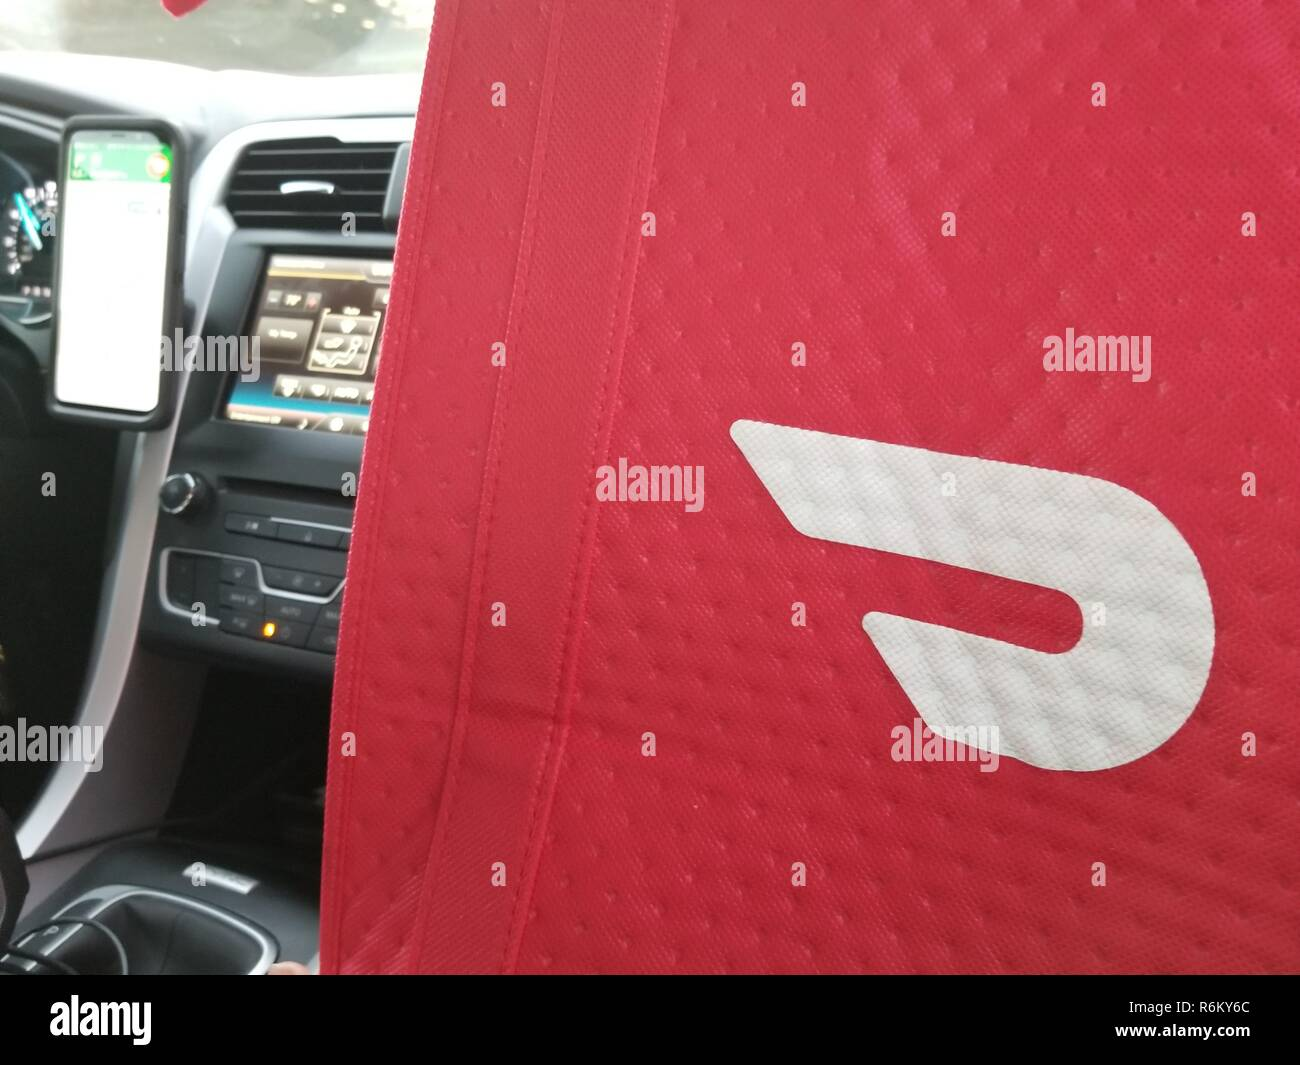 Insulated delivery bag with logo for food delivery gig economy app Doordash, in the front seat of a Doordash delivery vehicle in Walnut Creek, California, with smartphone and navigation app visible in background, October 9, 2018. () Stock Photo